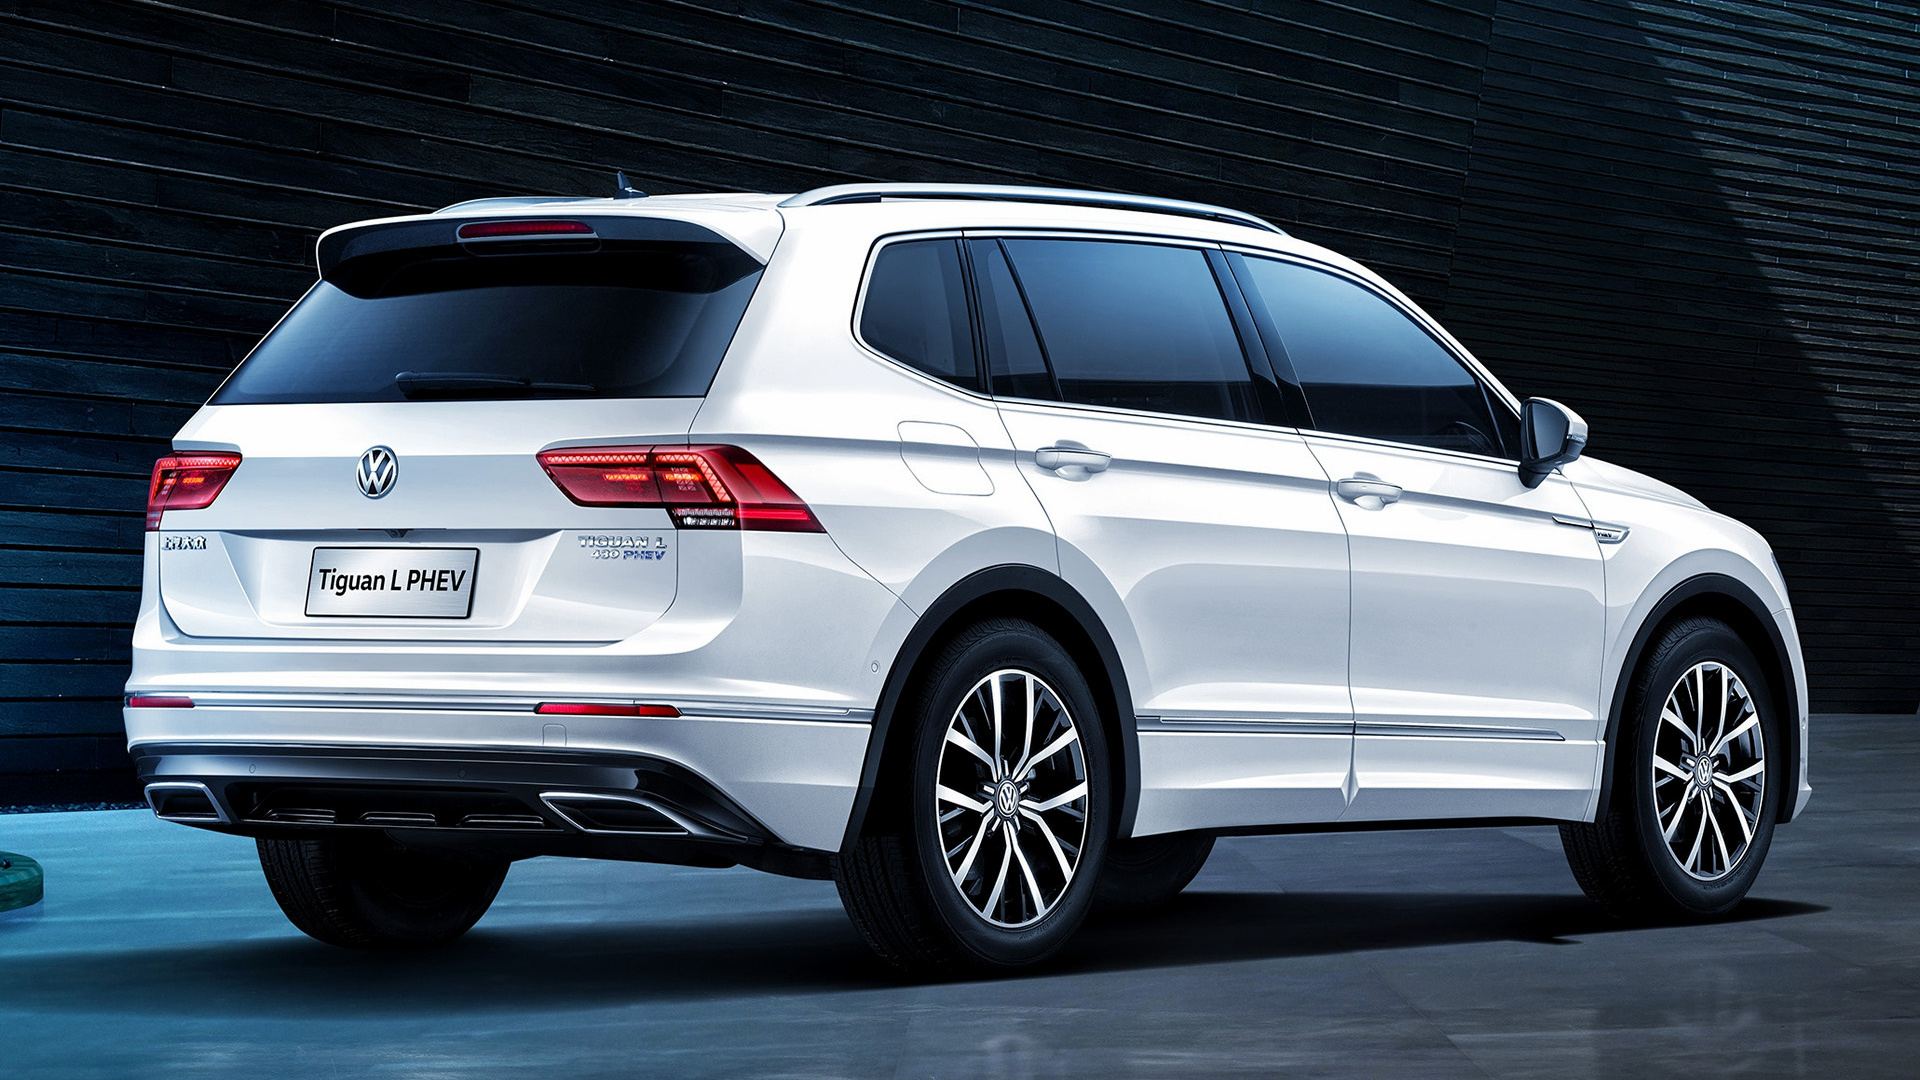 2018 Volkswagen Tiguan L PHEV (CN) - Wallpapers and HD Images | Car Pixel